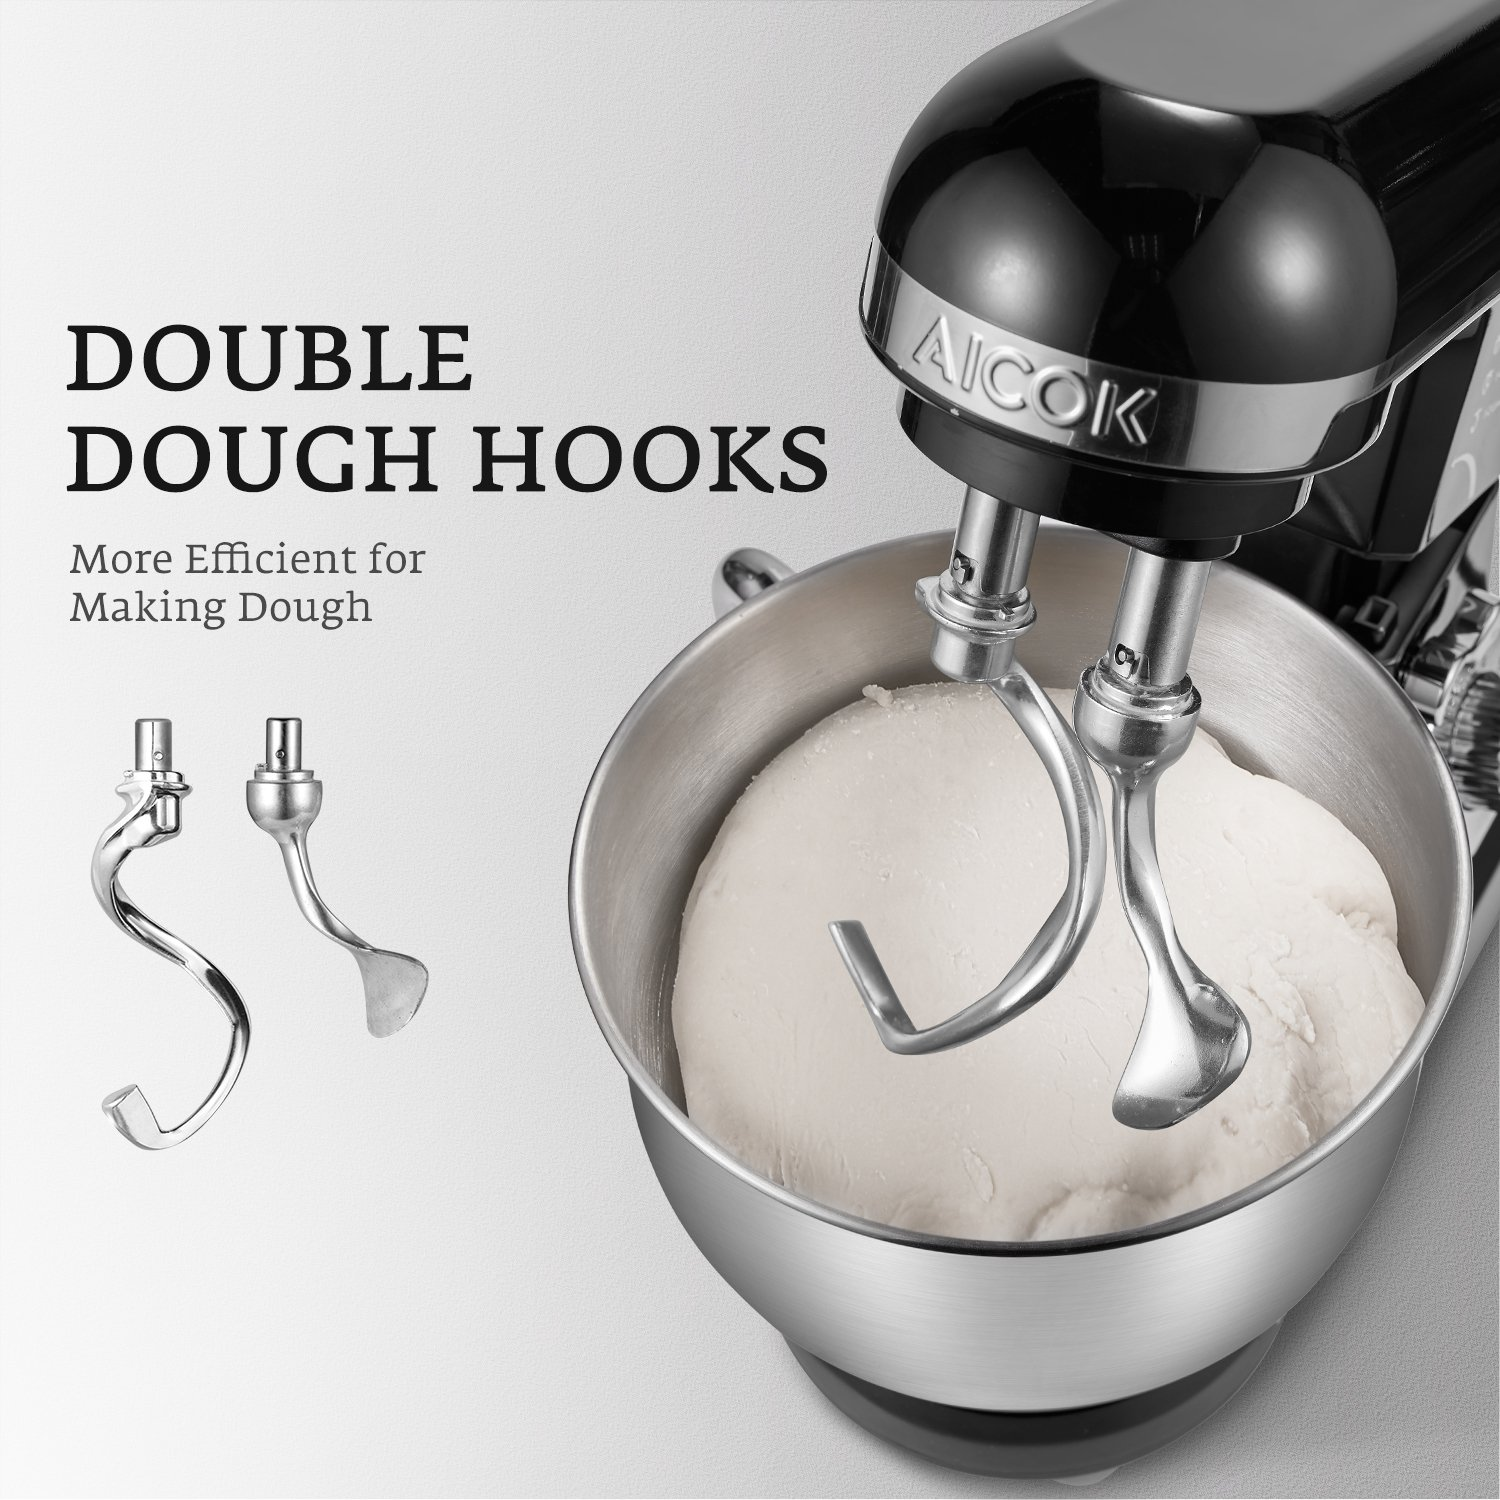 Stand Mixer, Aicok Dough Mixer with 5 Qt Stainless Steel Bowl, 500W 6 Speeds Tilt-Head Food Mixer, Kitchen Electric Mixer with Double Dough Hooks, Whisk, Beater, Pouring Shield, Black by AICOK (Image #2)